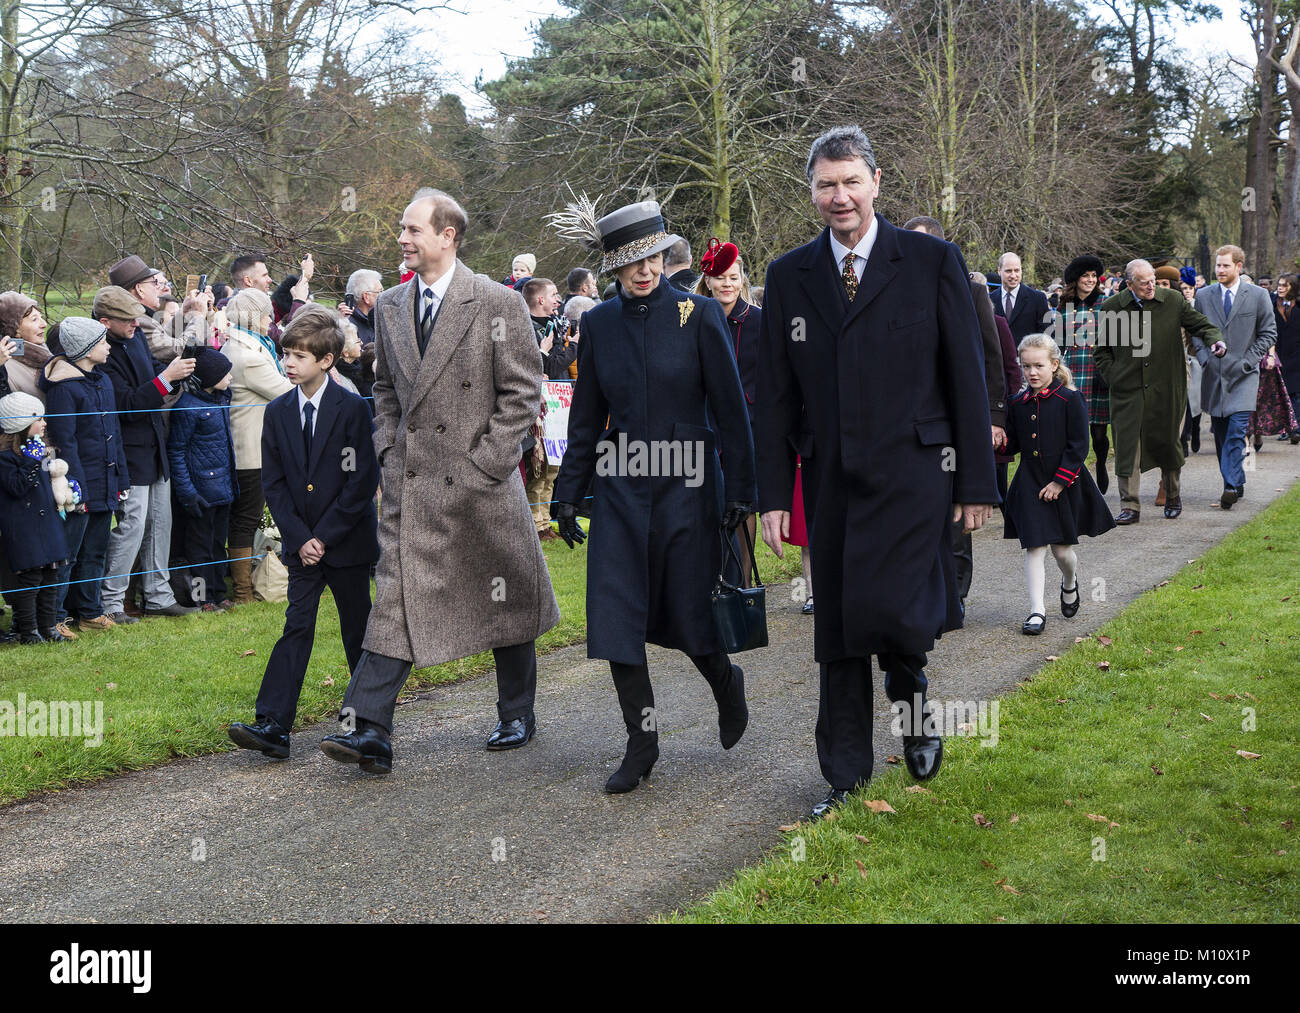 The British Royal family arrive at Sandringham to celebrate Christmas Day  Featuring: Princess Anne, Prince Edward - Stock Image